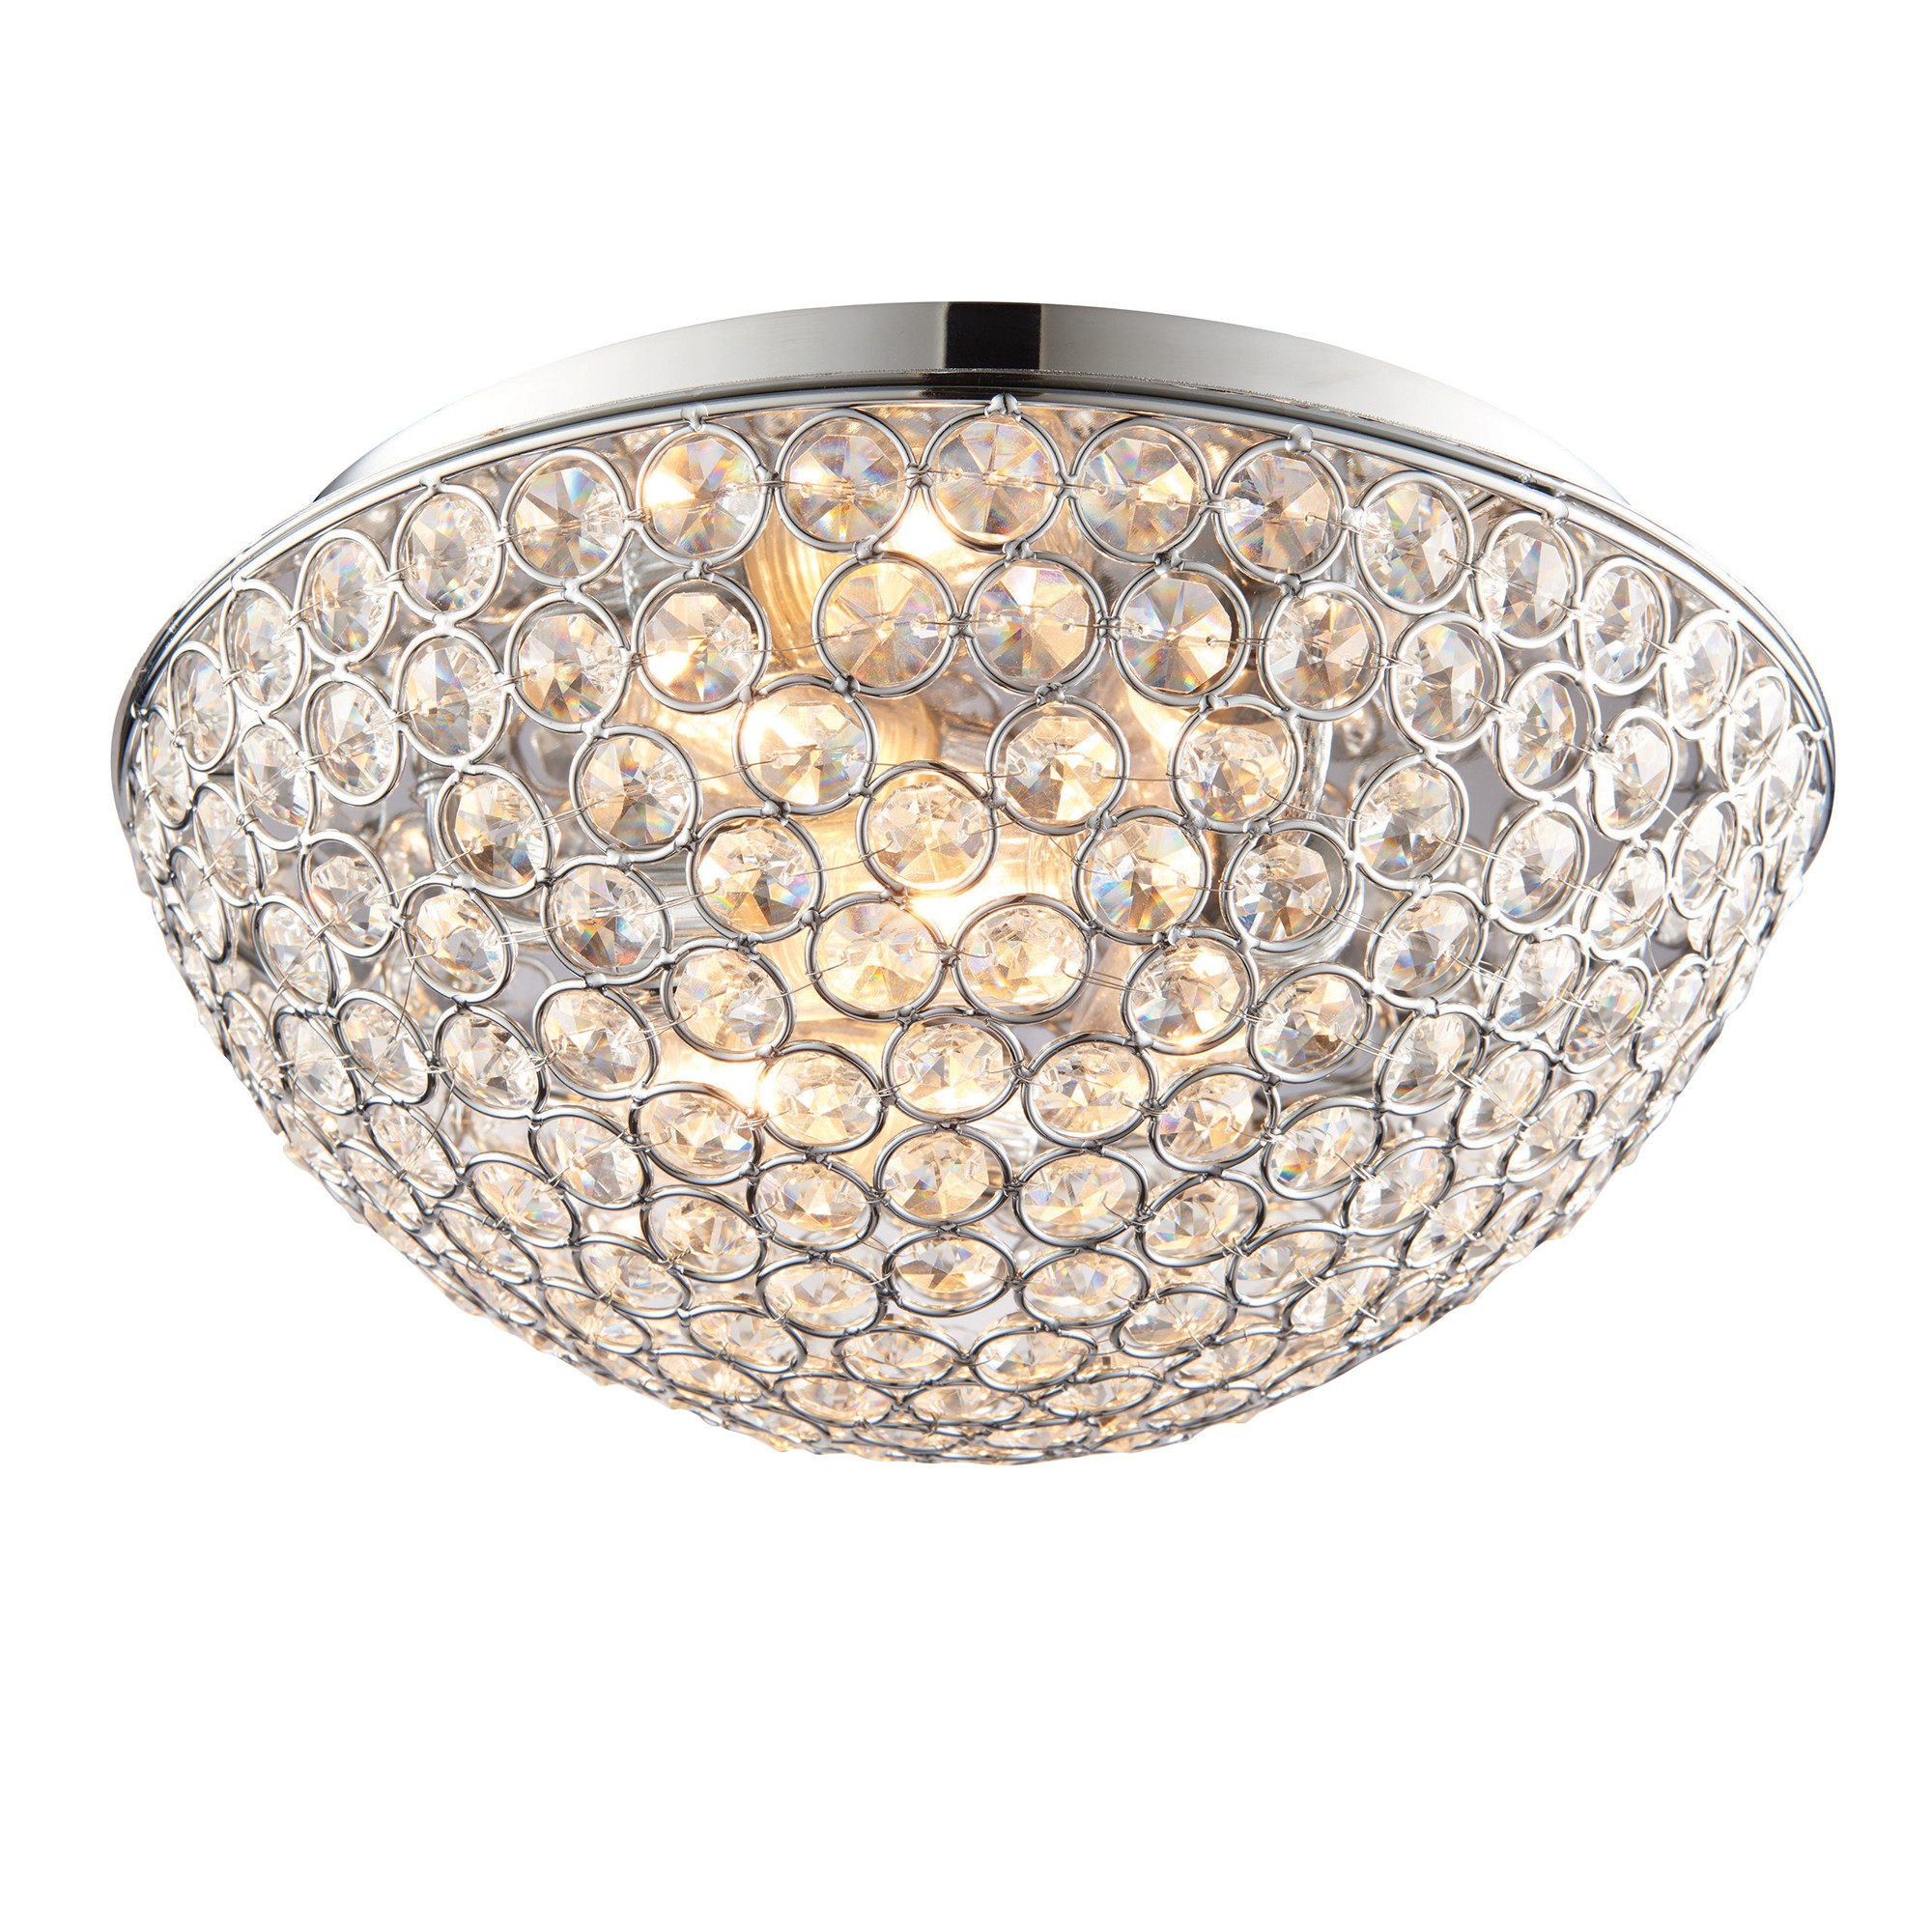 Crystal Ceiling Lights Uk Winda 7 Furniture Within Flush Chandelier Ceiling Lights (Image 12 of 25)